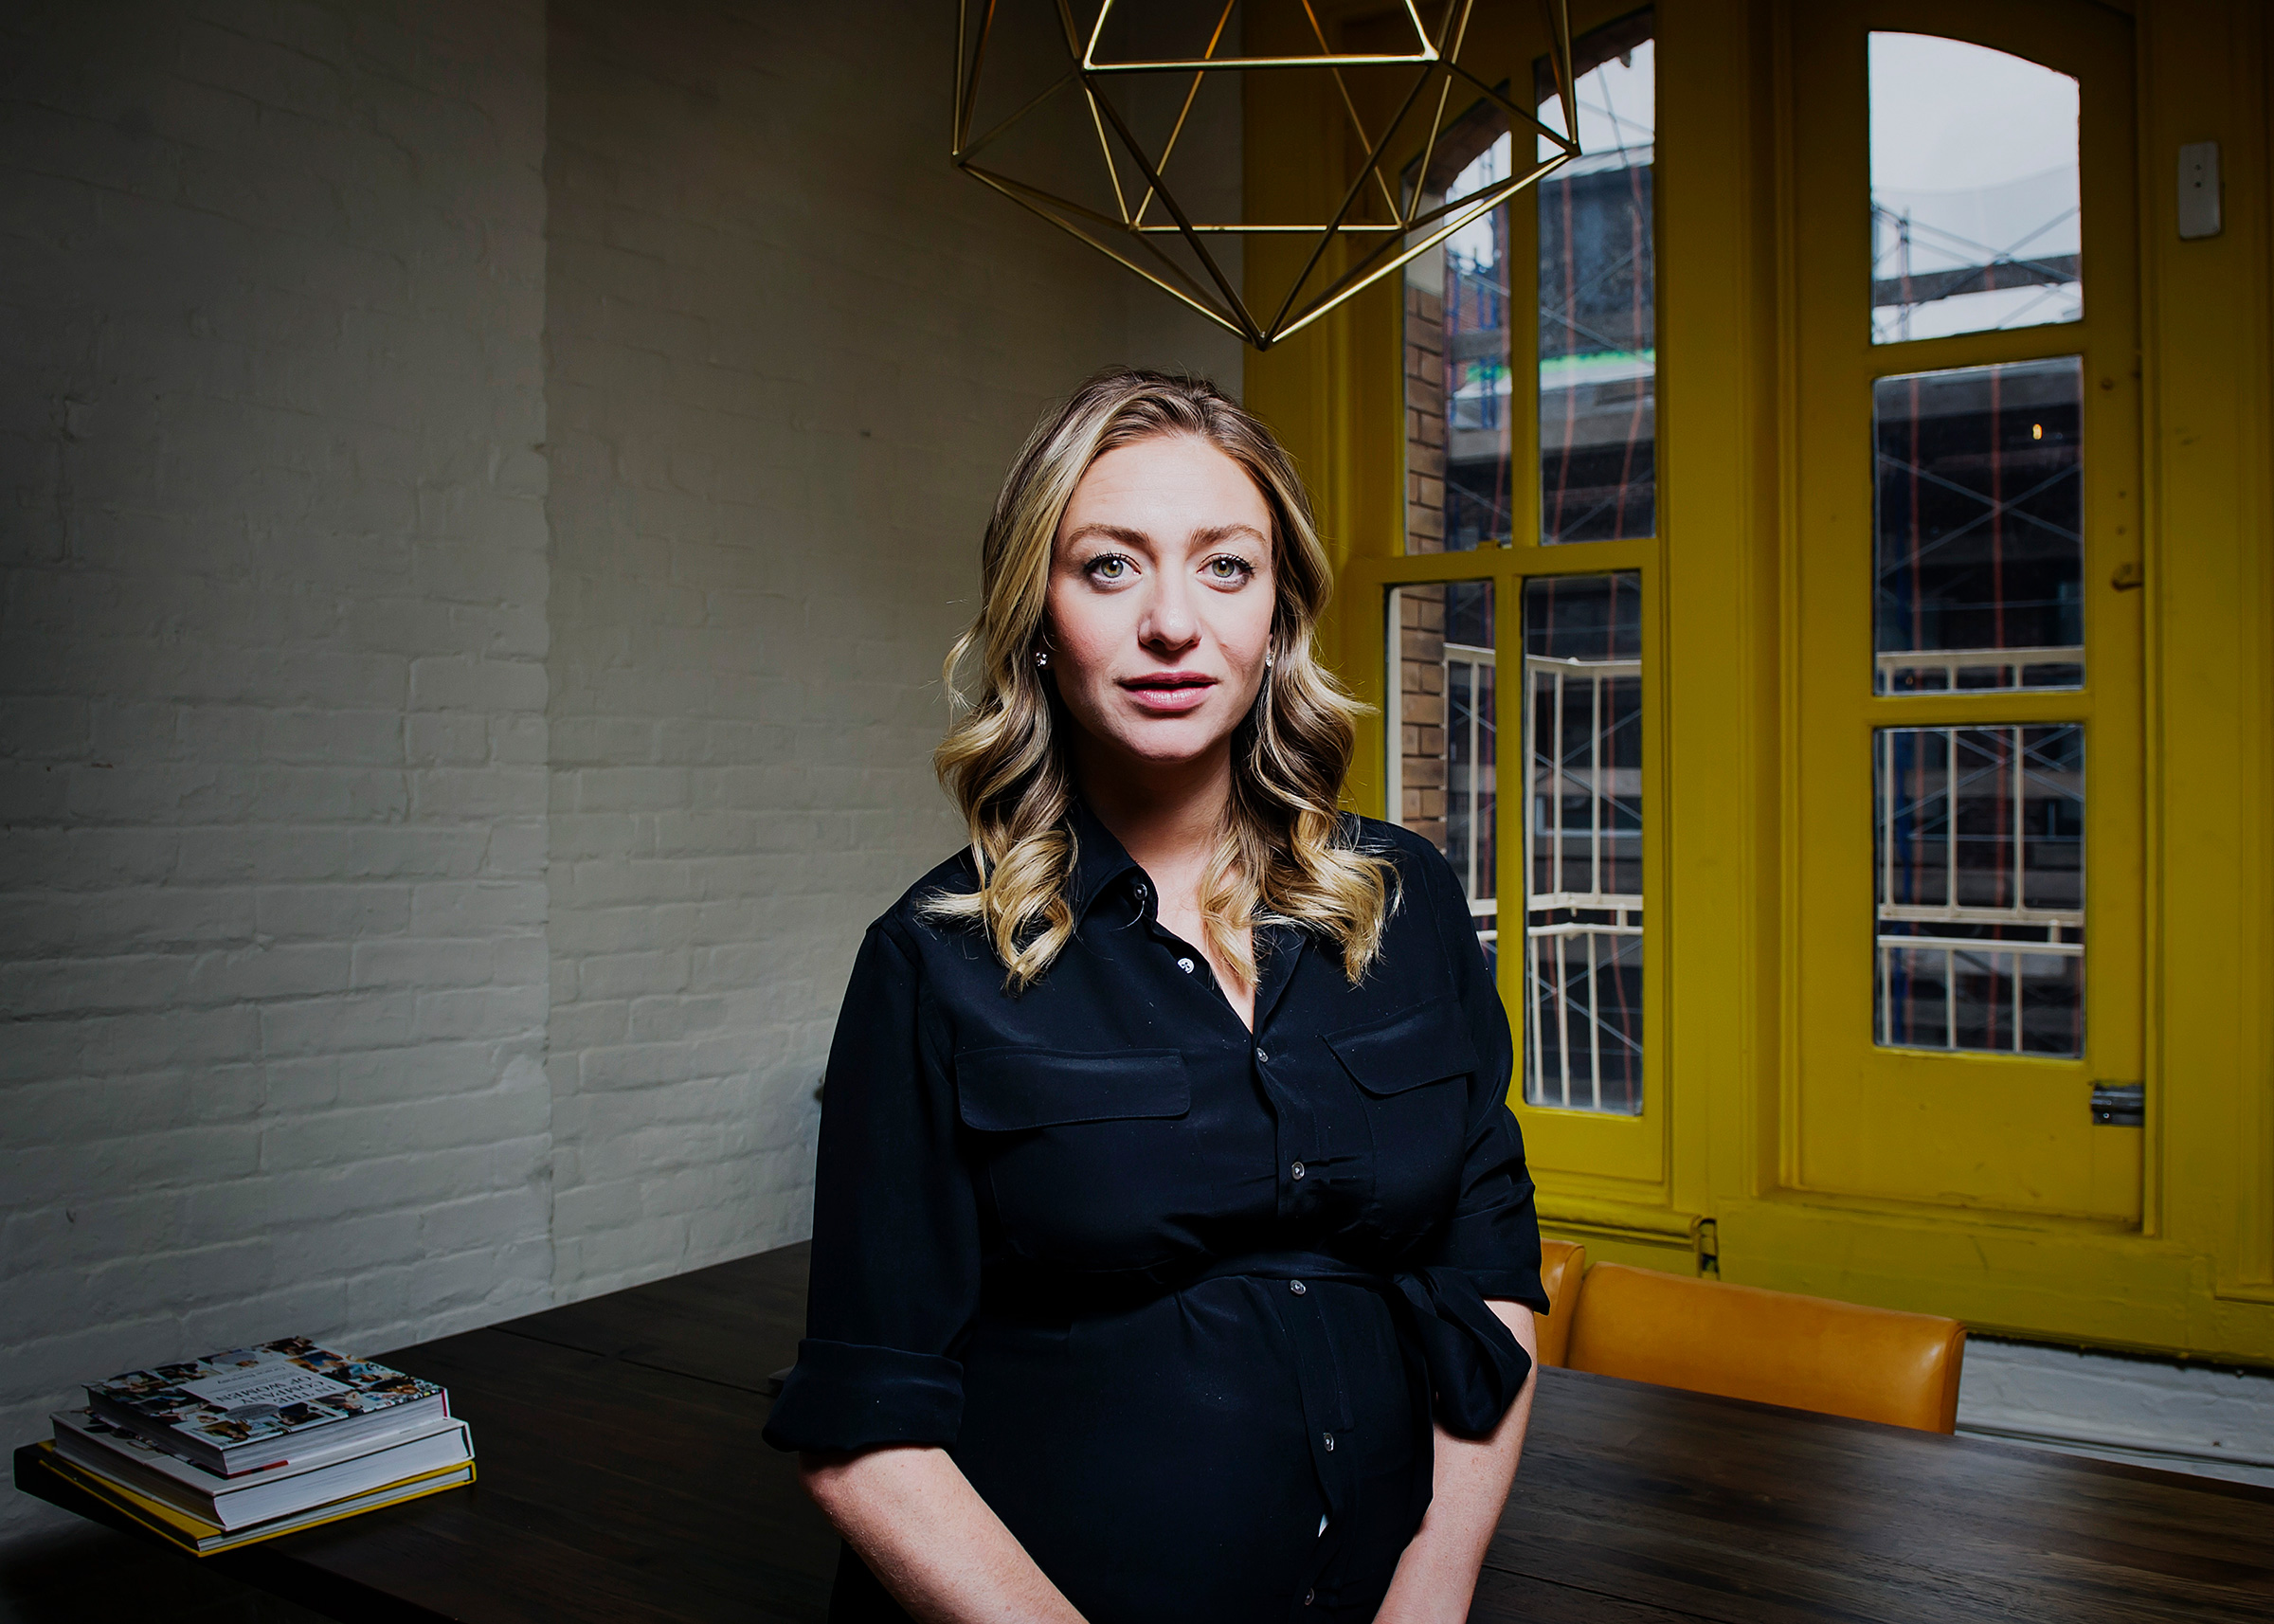 Bumble founder, Whitney Wolfe Herd, photographed in her offices in Soho, New York City in 2019.